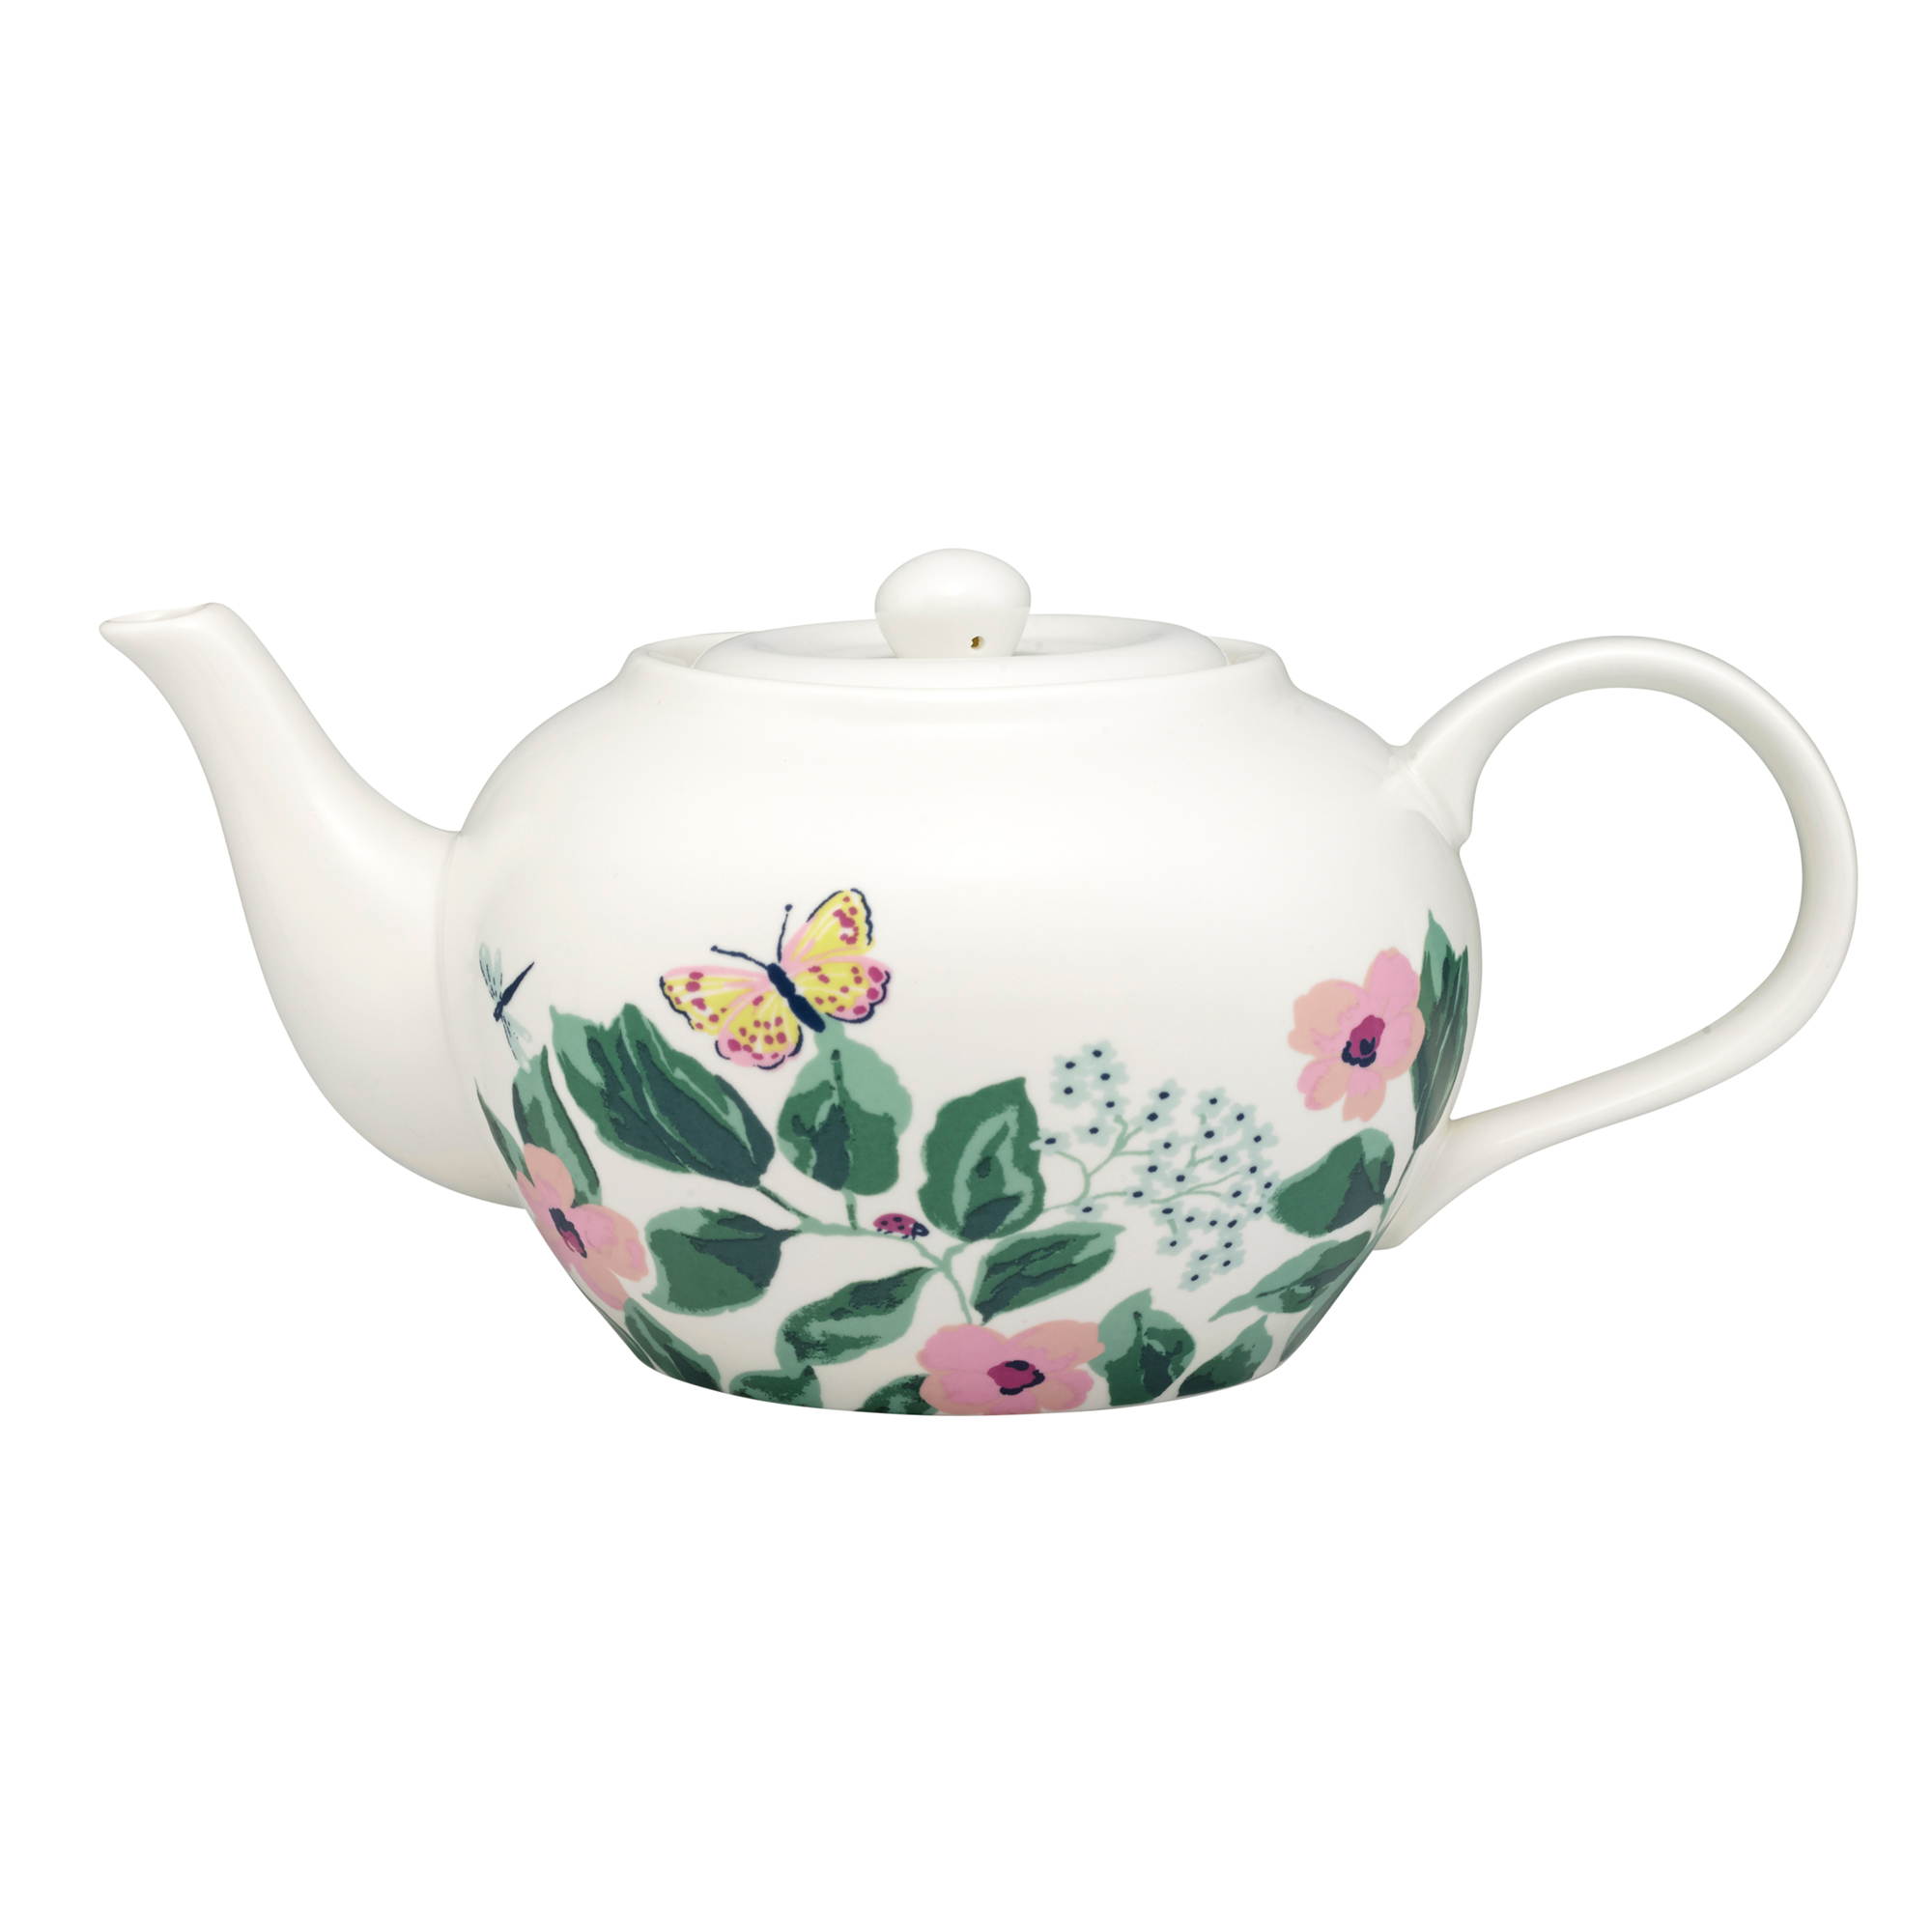 Cath-Kidston-Mornington-Leaves-Teapot.jpg